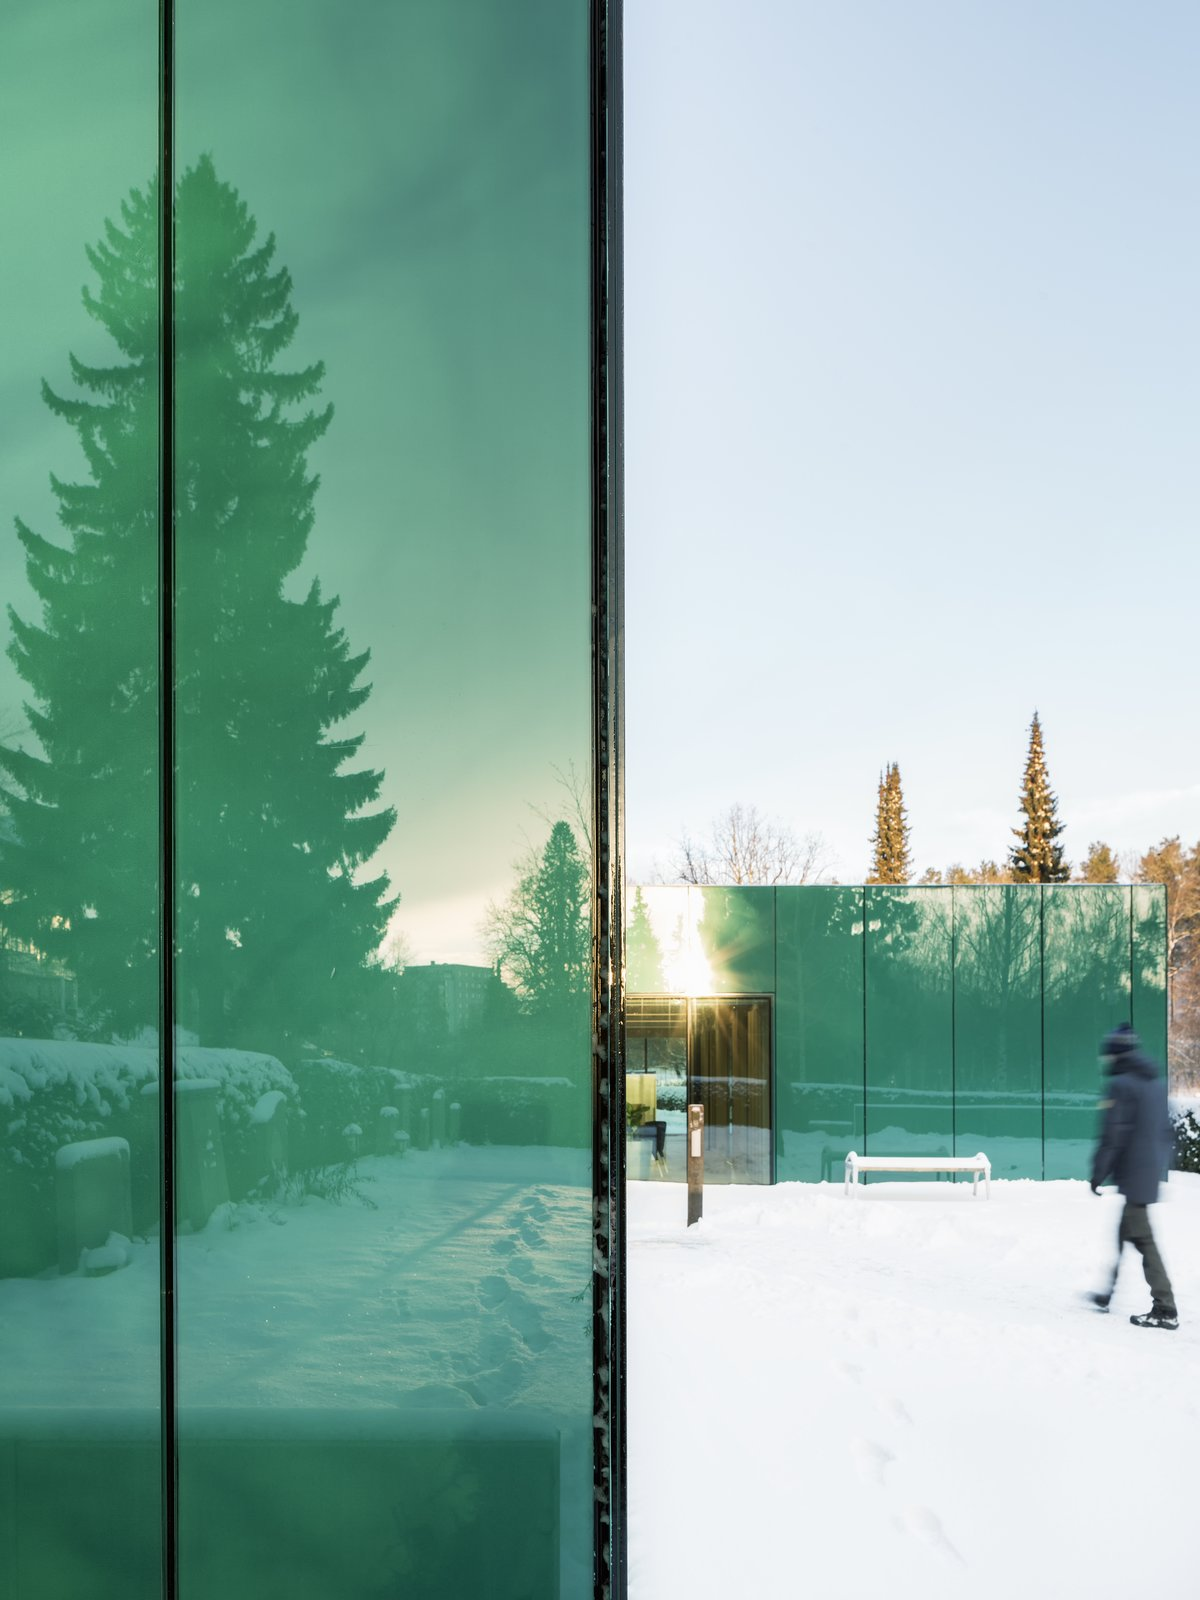 One of architect Gert Wingårdhs' favorite parts of the building is the reflection in the glass (although self-described as cliché).